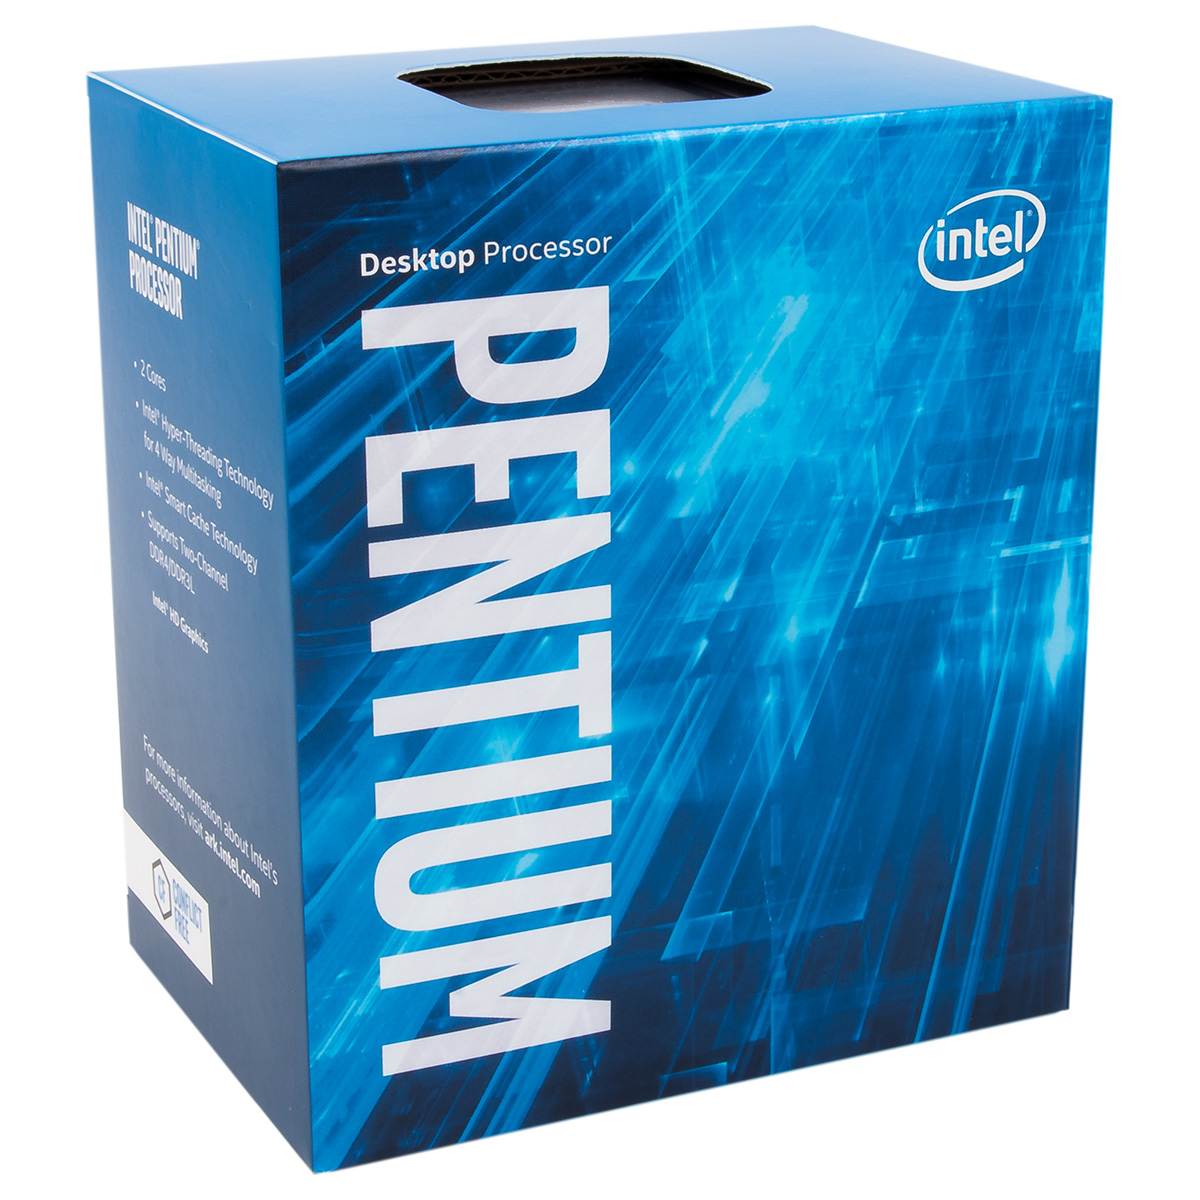 Processeur Intel Pentium G4560 (3.5 GHz) Processeur Dual Core Socket 1151 Cache L3 3 Mo Intel HD Graphics 610 0.014 micron (version boîte - garantie Intel 3 ans)